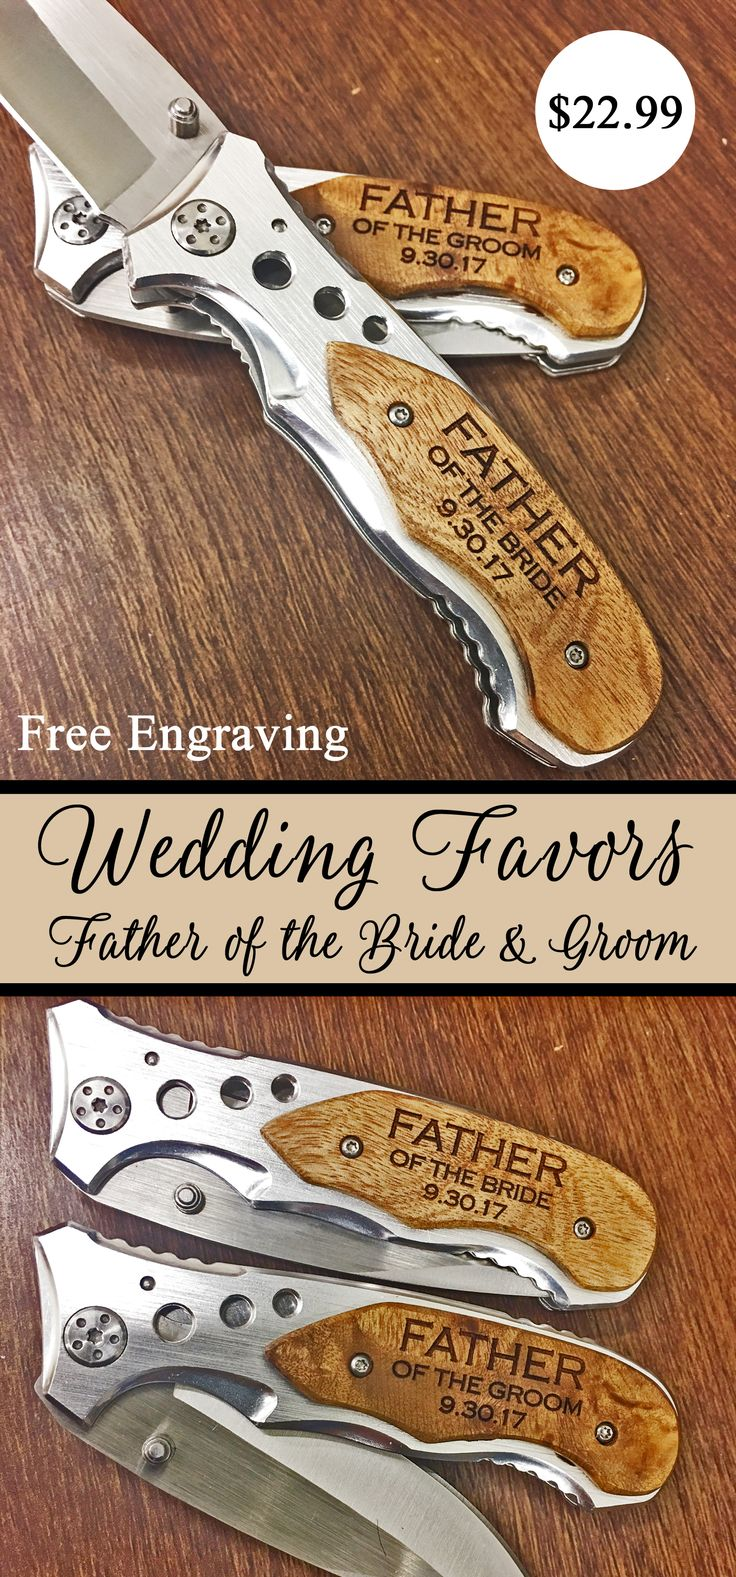 Your wedding is such a special day not just for your but also for your parents.  Give your Dad a special gift that will help him remember your amazing wedding day.  Our unique custom engraved pocket knives are also a great gift for the father of the bride and groom.  And don't forget about your groomsmen, best man, ushers, and uncles!